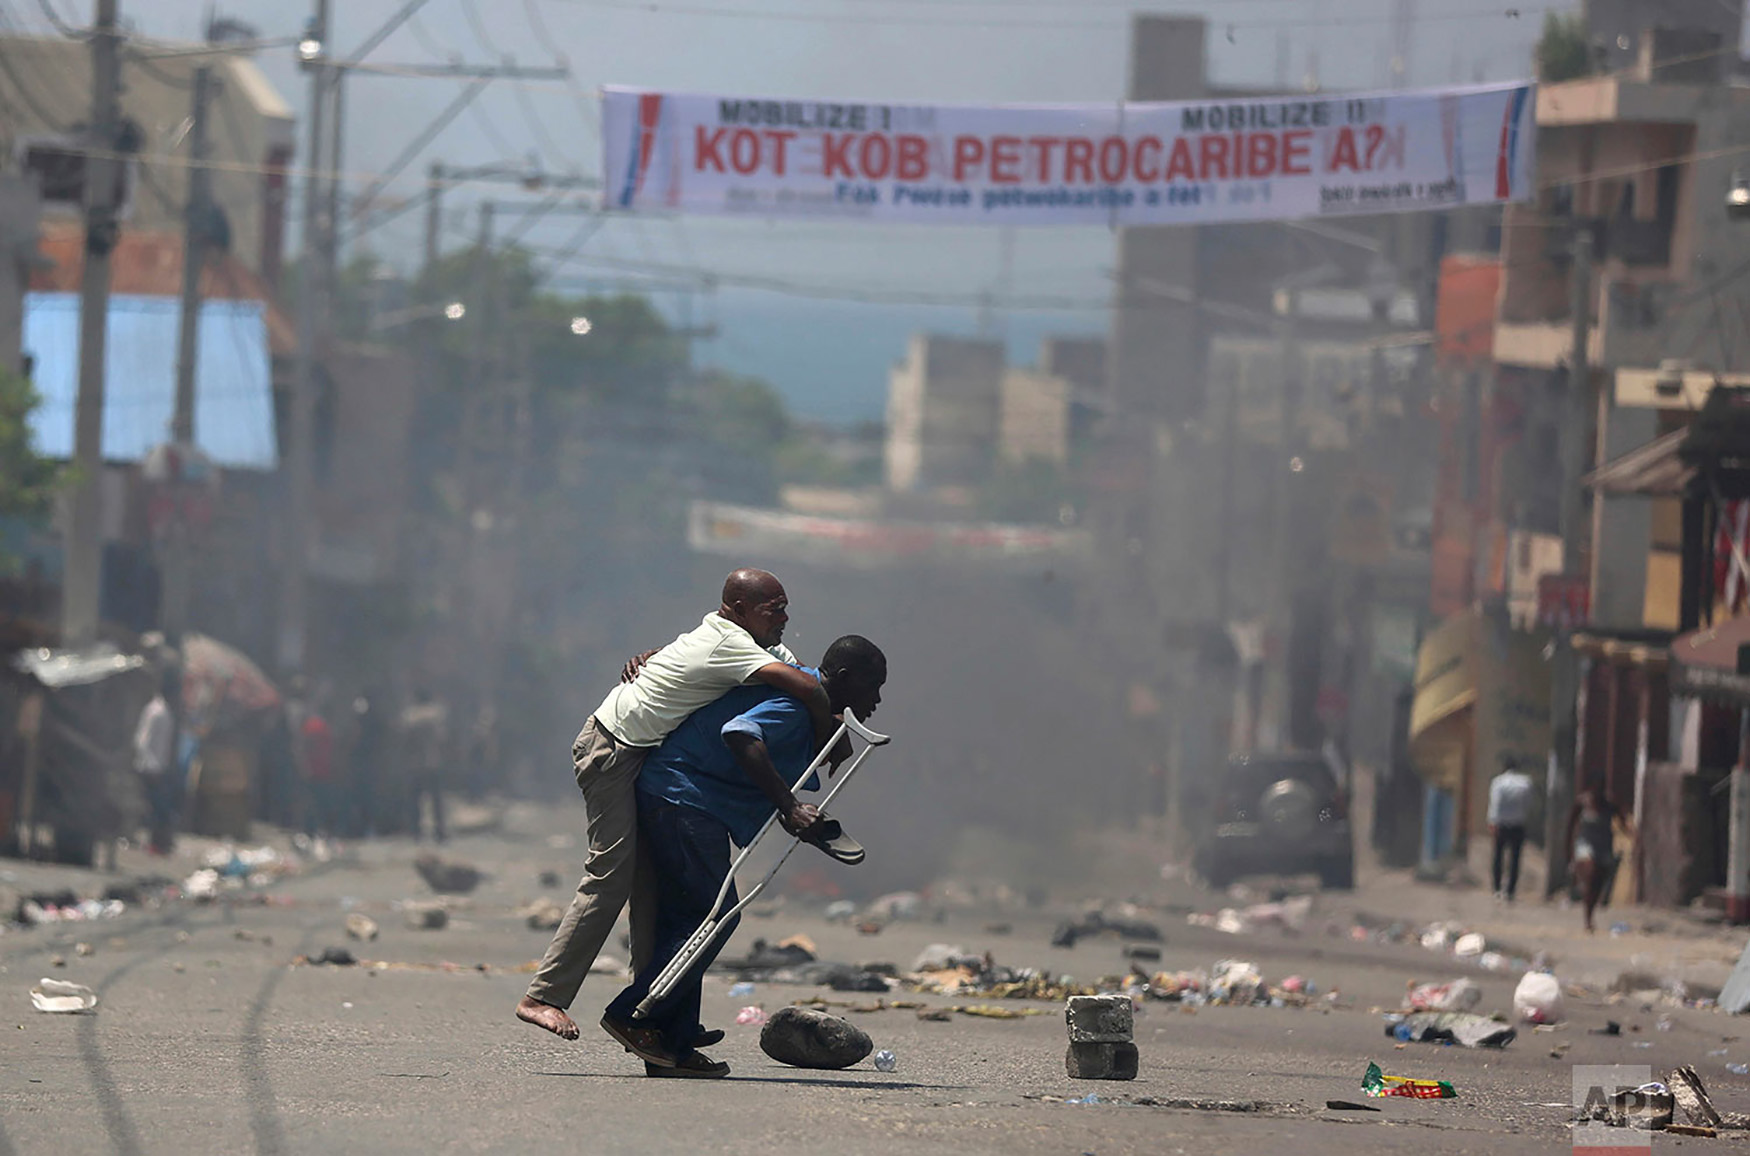 A handicapped man is carried across the street amid police firing tear gas at protesters who are demanding to know how PetroCaribe funds have been used by the current and past administrations, in Port-au-Prince, Haiti, Sept. 9, 2018. Much of the financial support to help Haiti rebuild after the 2010 earthquake comes from Venezuela's PetroCaribe fund, a 2005 pact that gives suppliers below-market financing for oil and is under the control of the central government. (AP Photo/Dieu Nalio Chery)